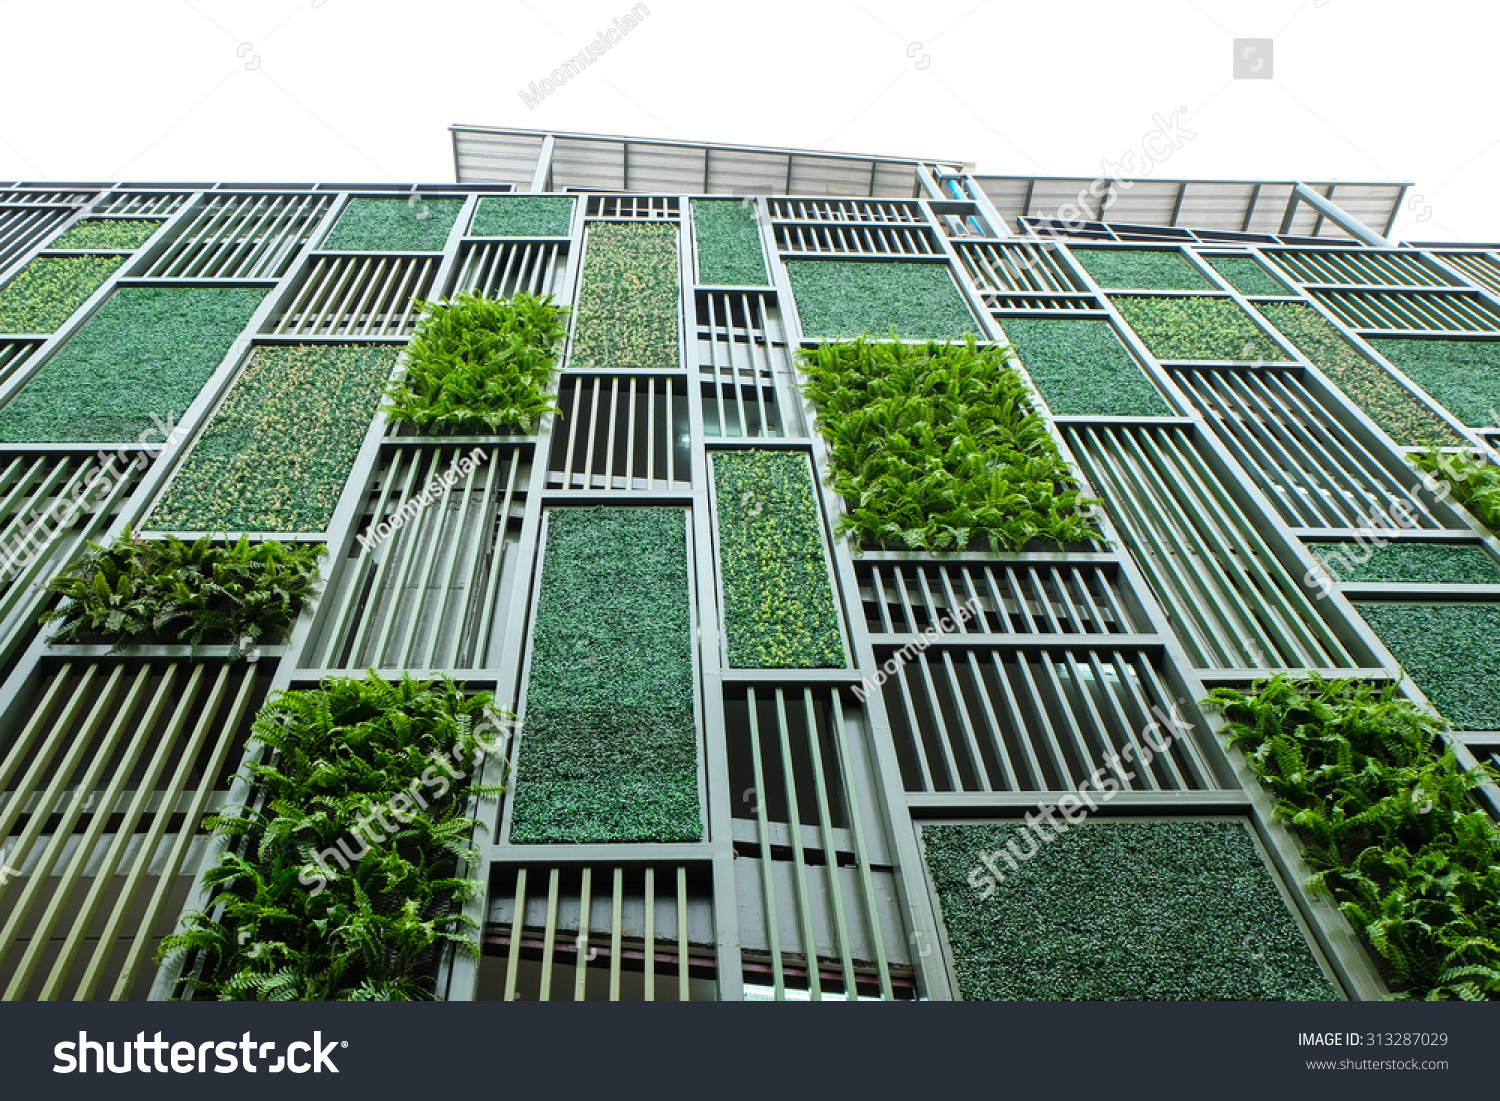 Green facade vertical garden in architecture ecological Building facade pictures